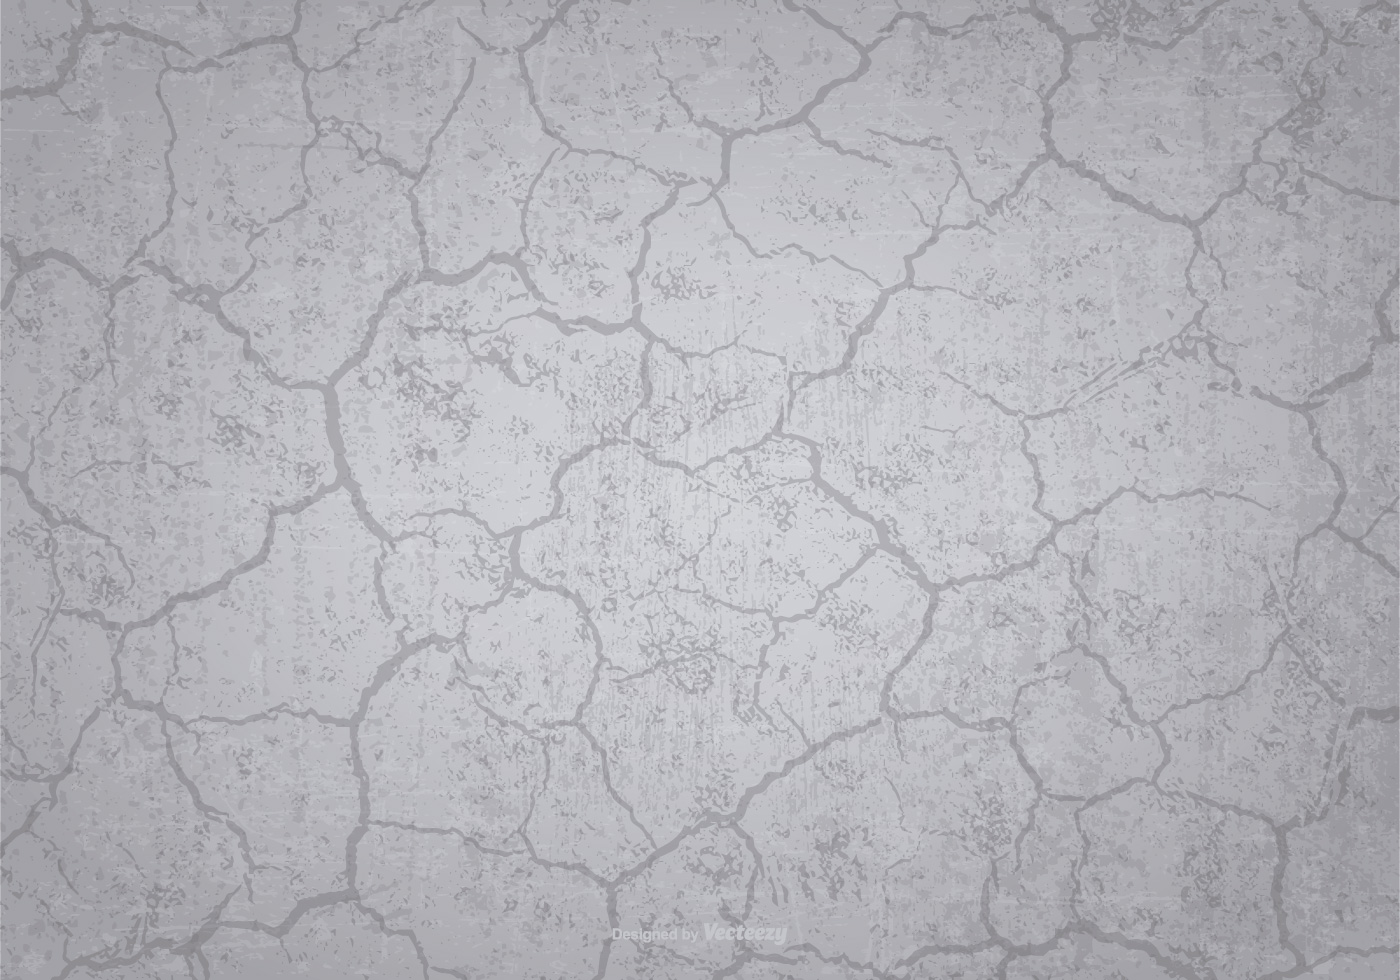 Cracked Stone Vector Texture - Download Free Vector Art ...